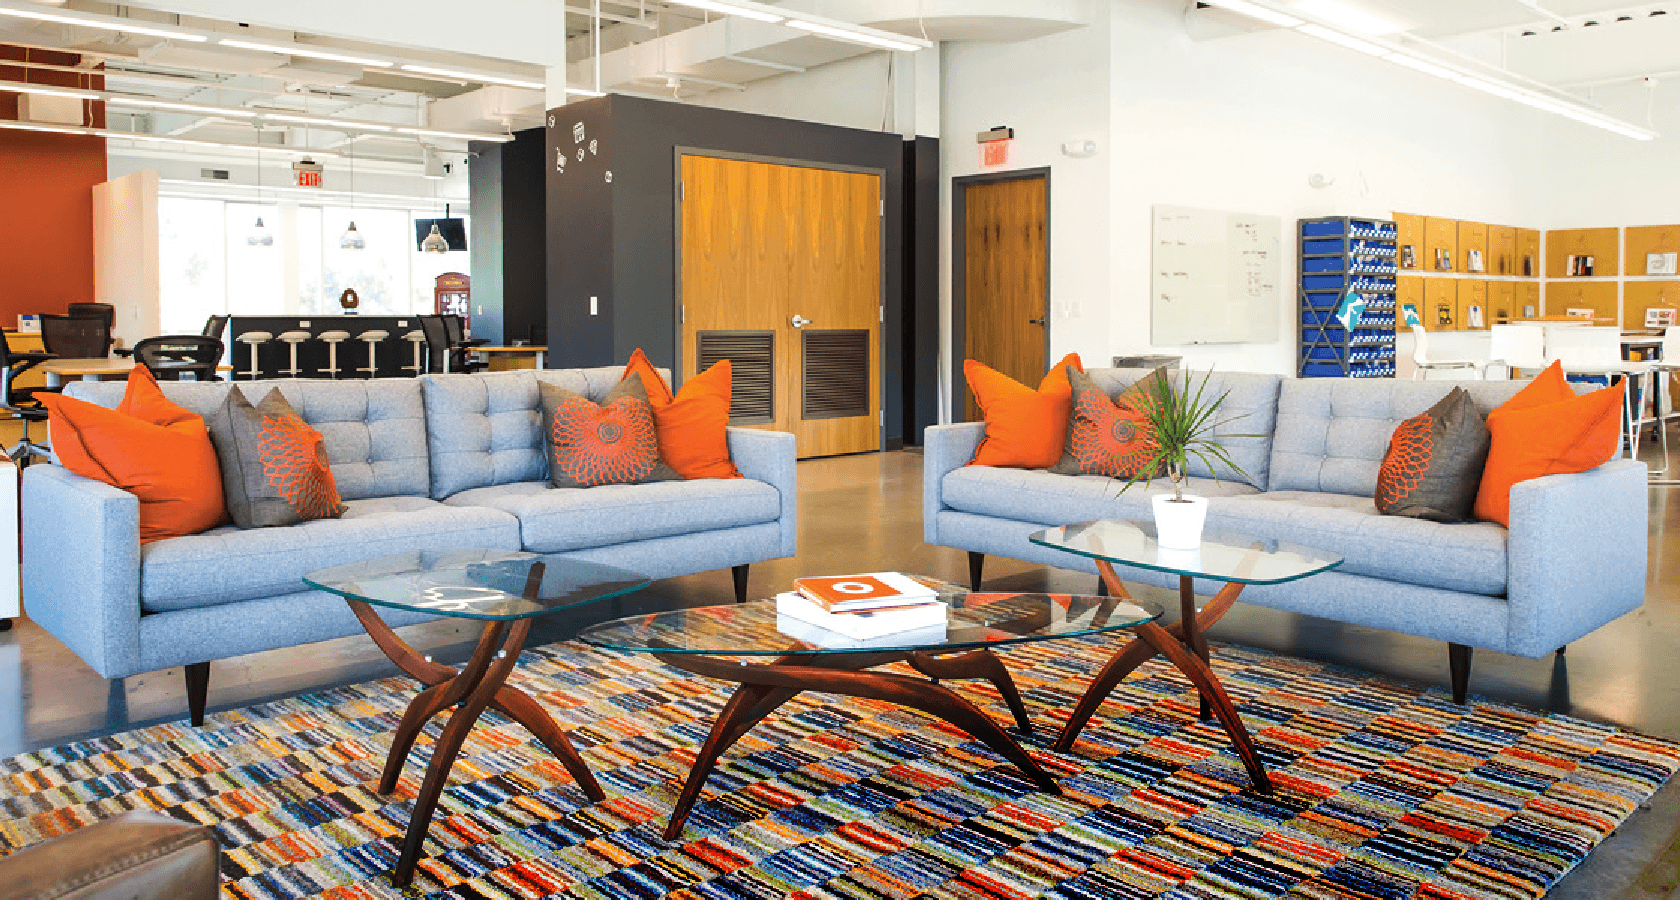 two grey couches with orange accessories in an office common area